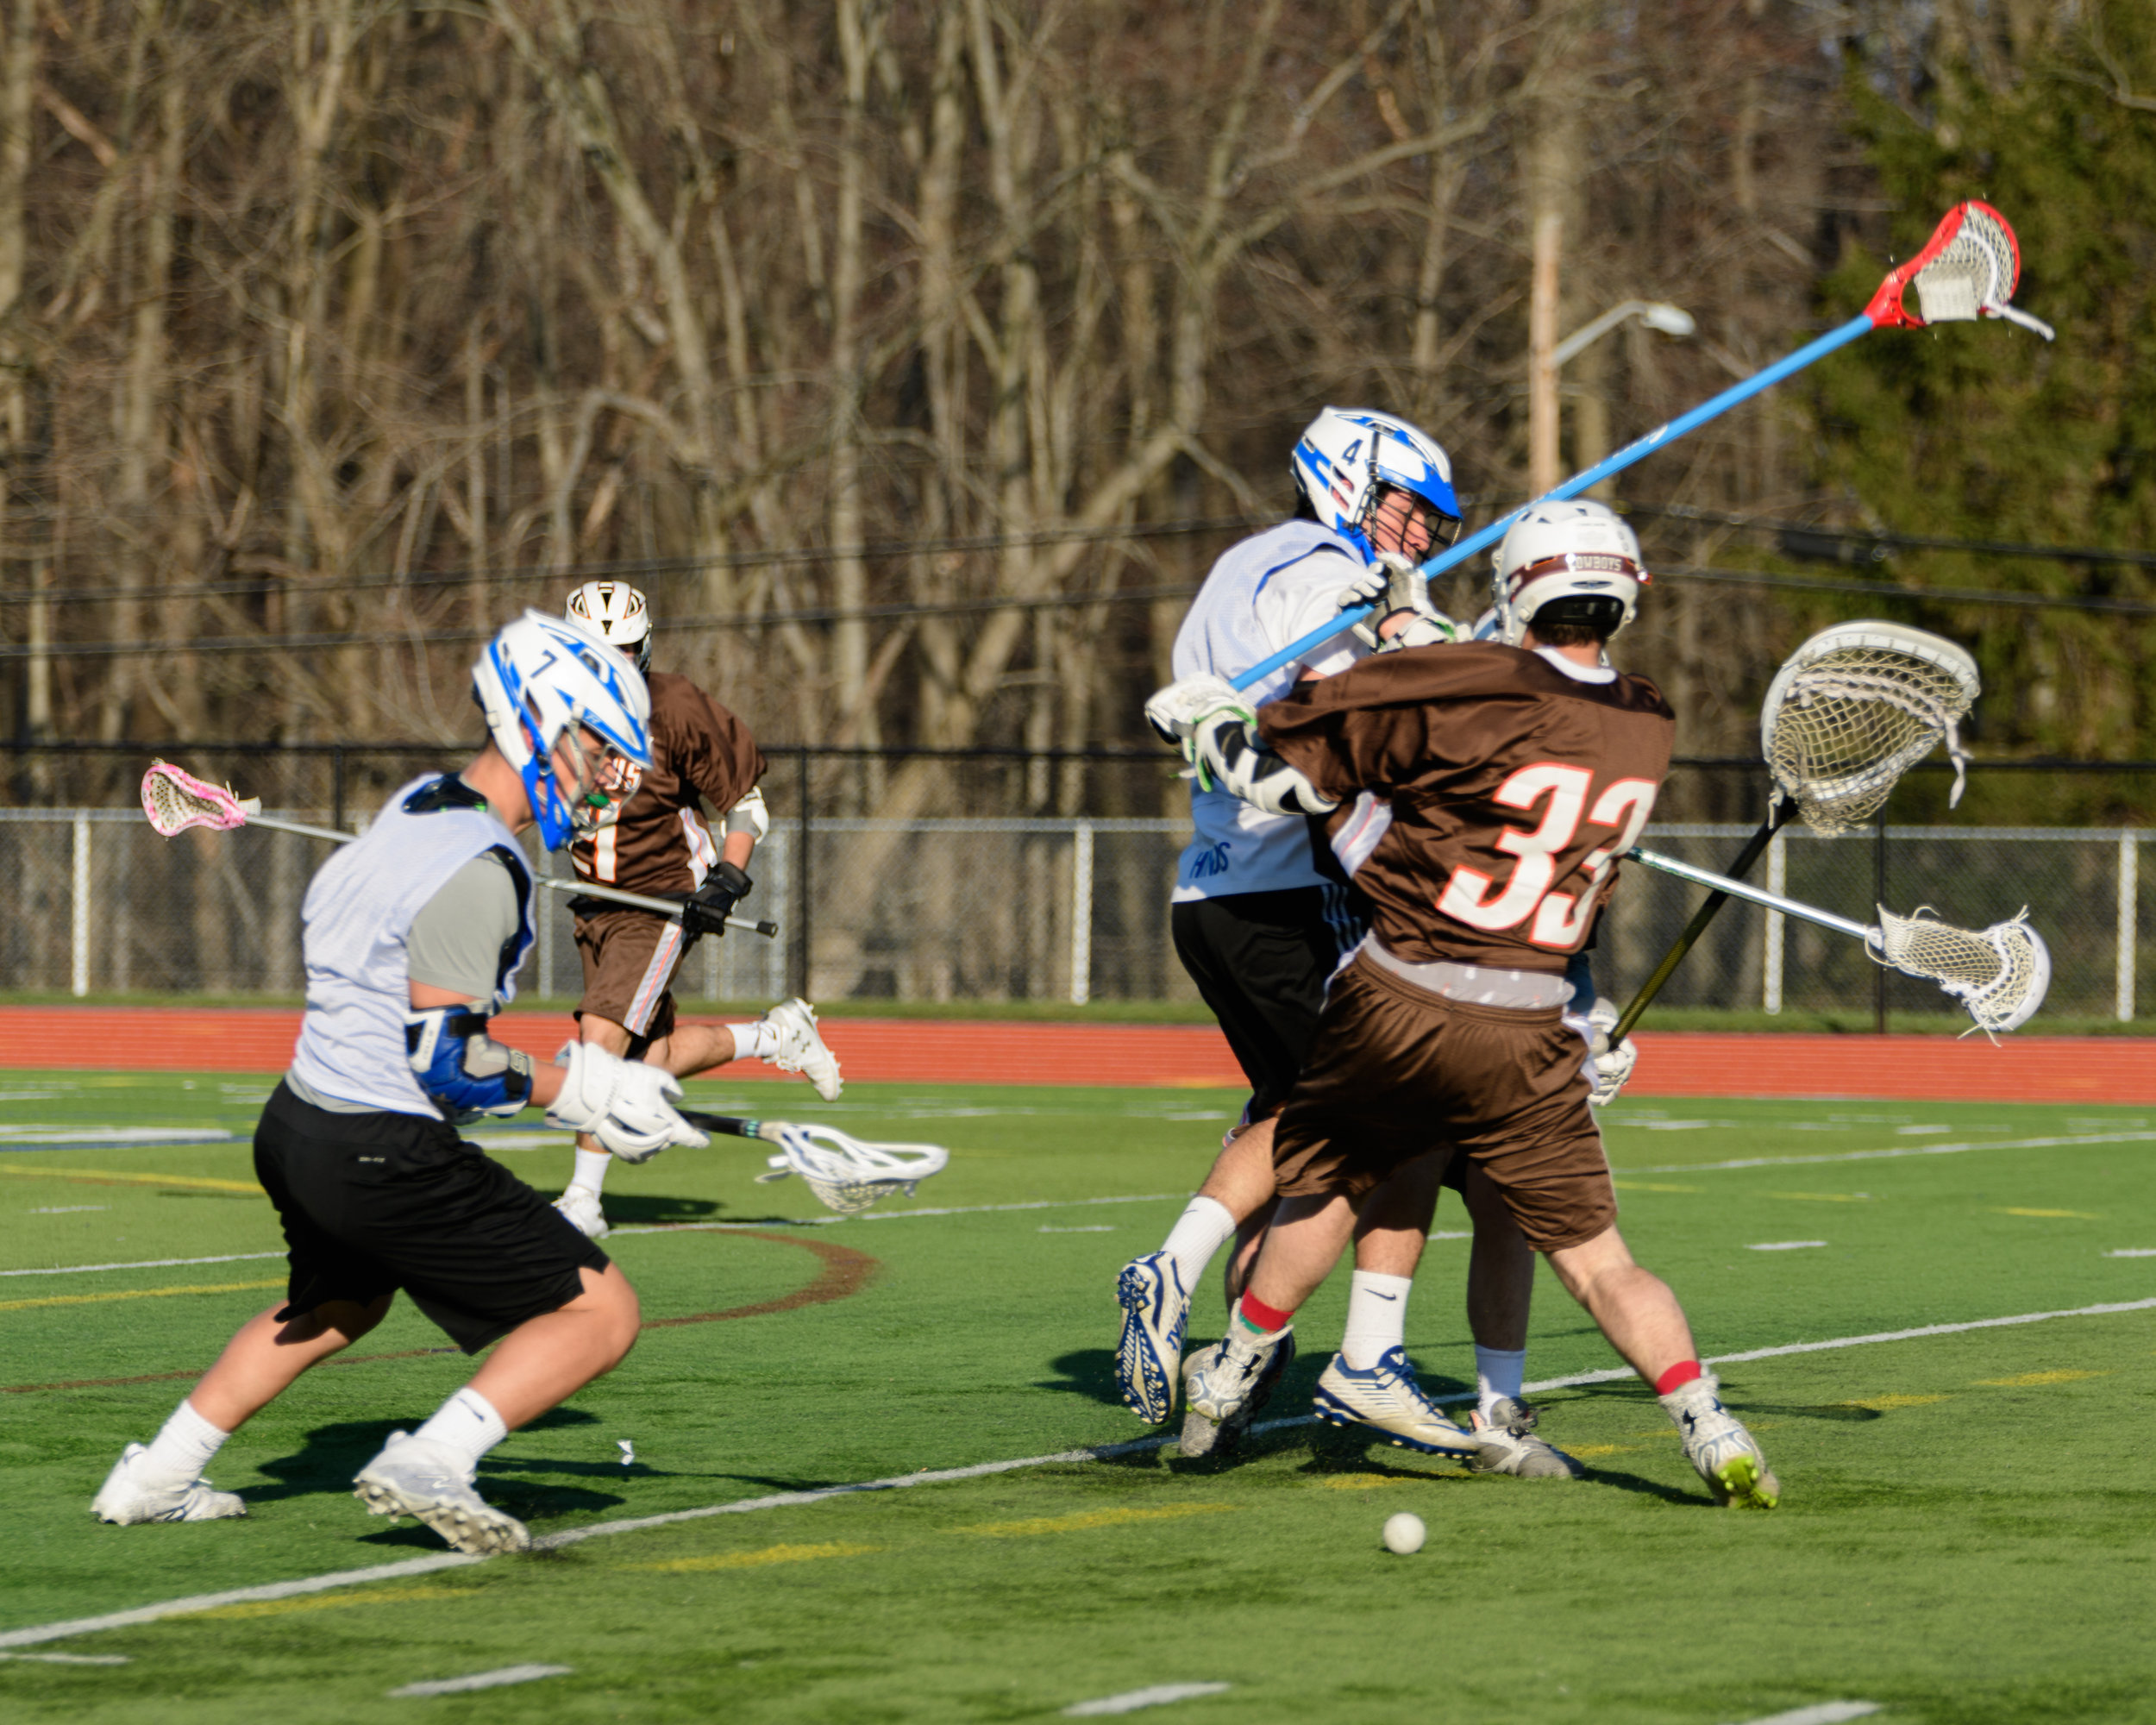 Northern-Valley-Demarest-HS-Lacrosse-03212017-0303.jpg